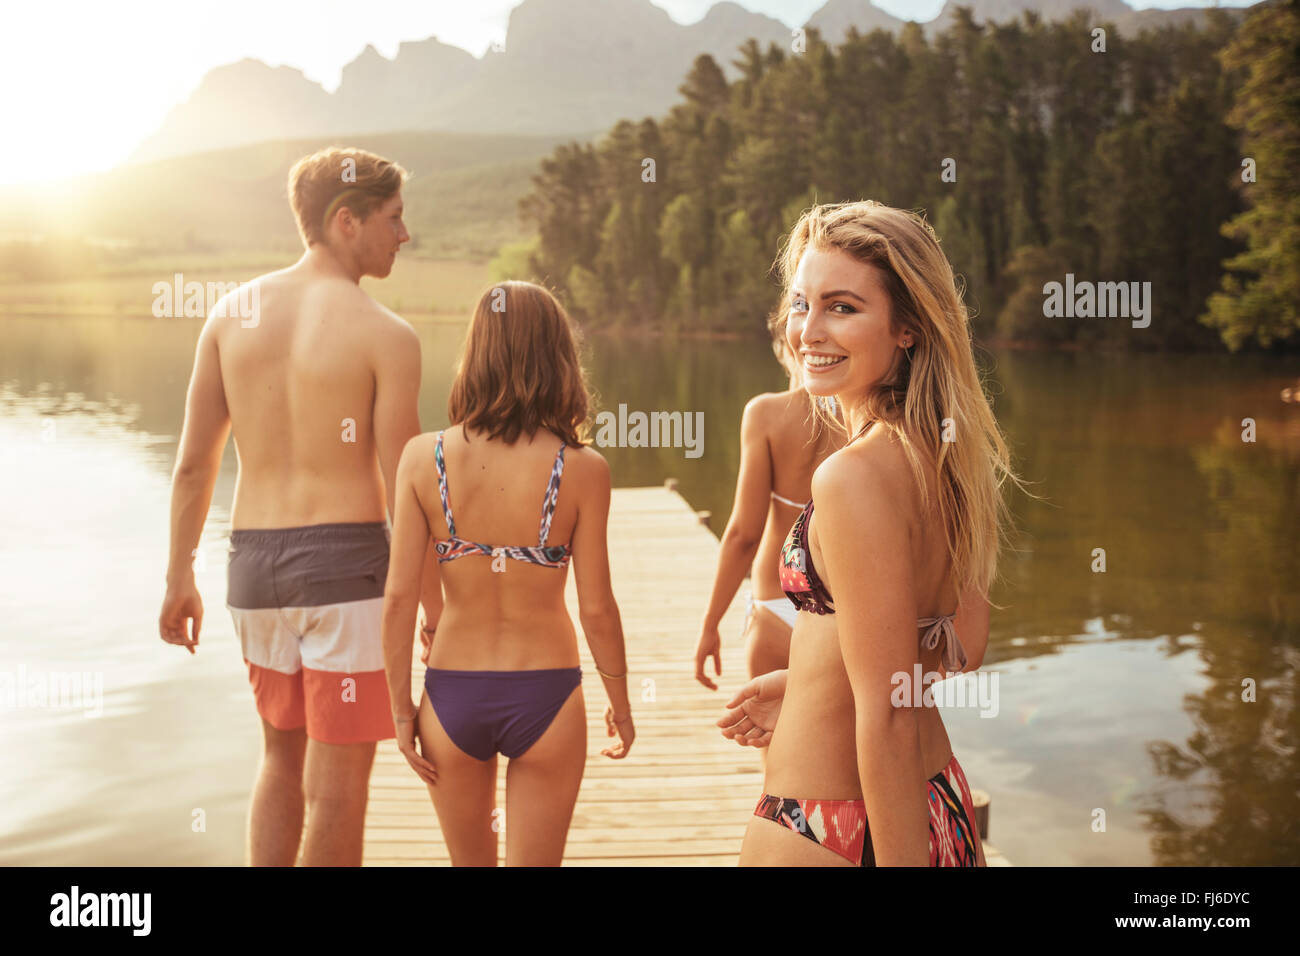 Portrait of beautiful young girl in bikini looking over her shoulder with her friends on pier. Group of young people - Stock Image